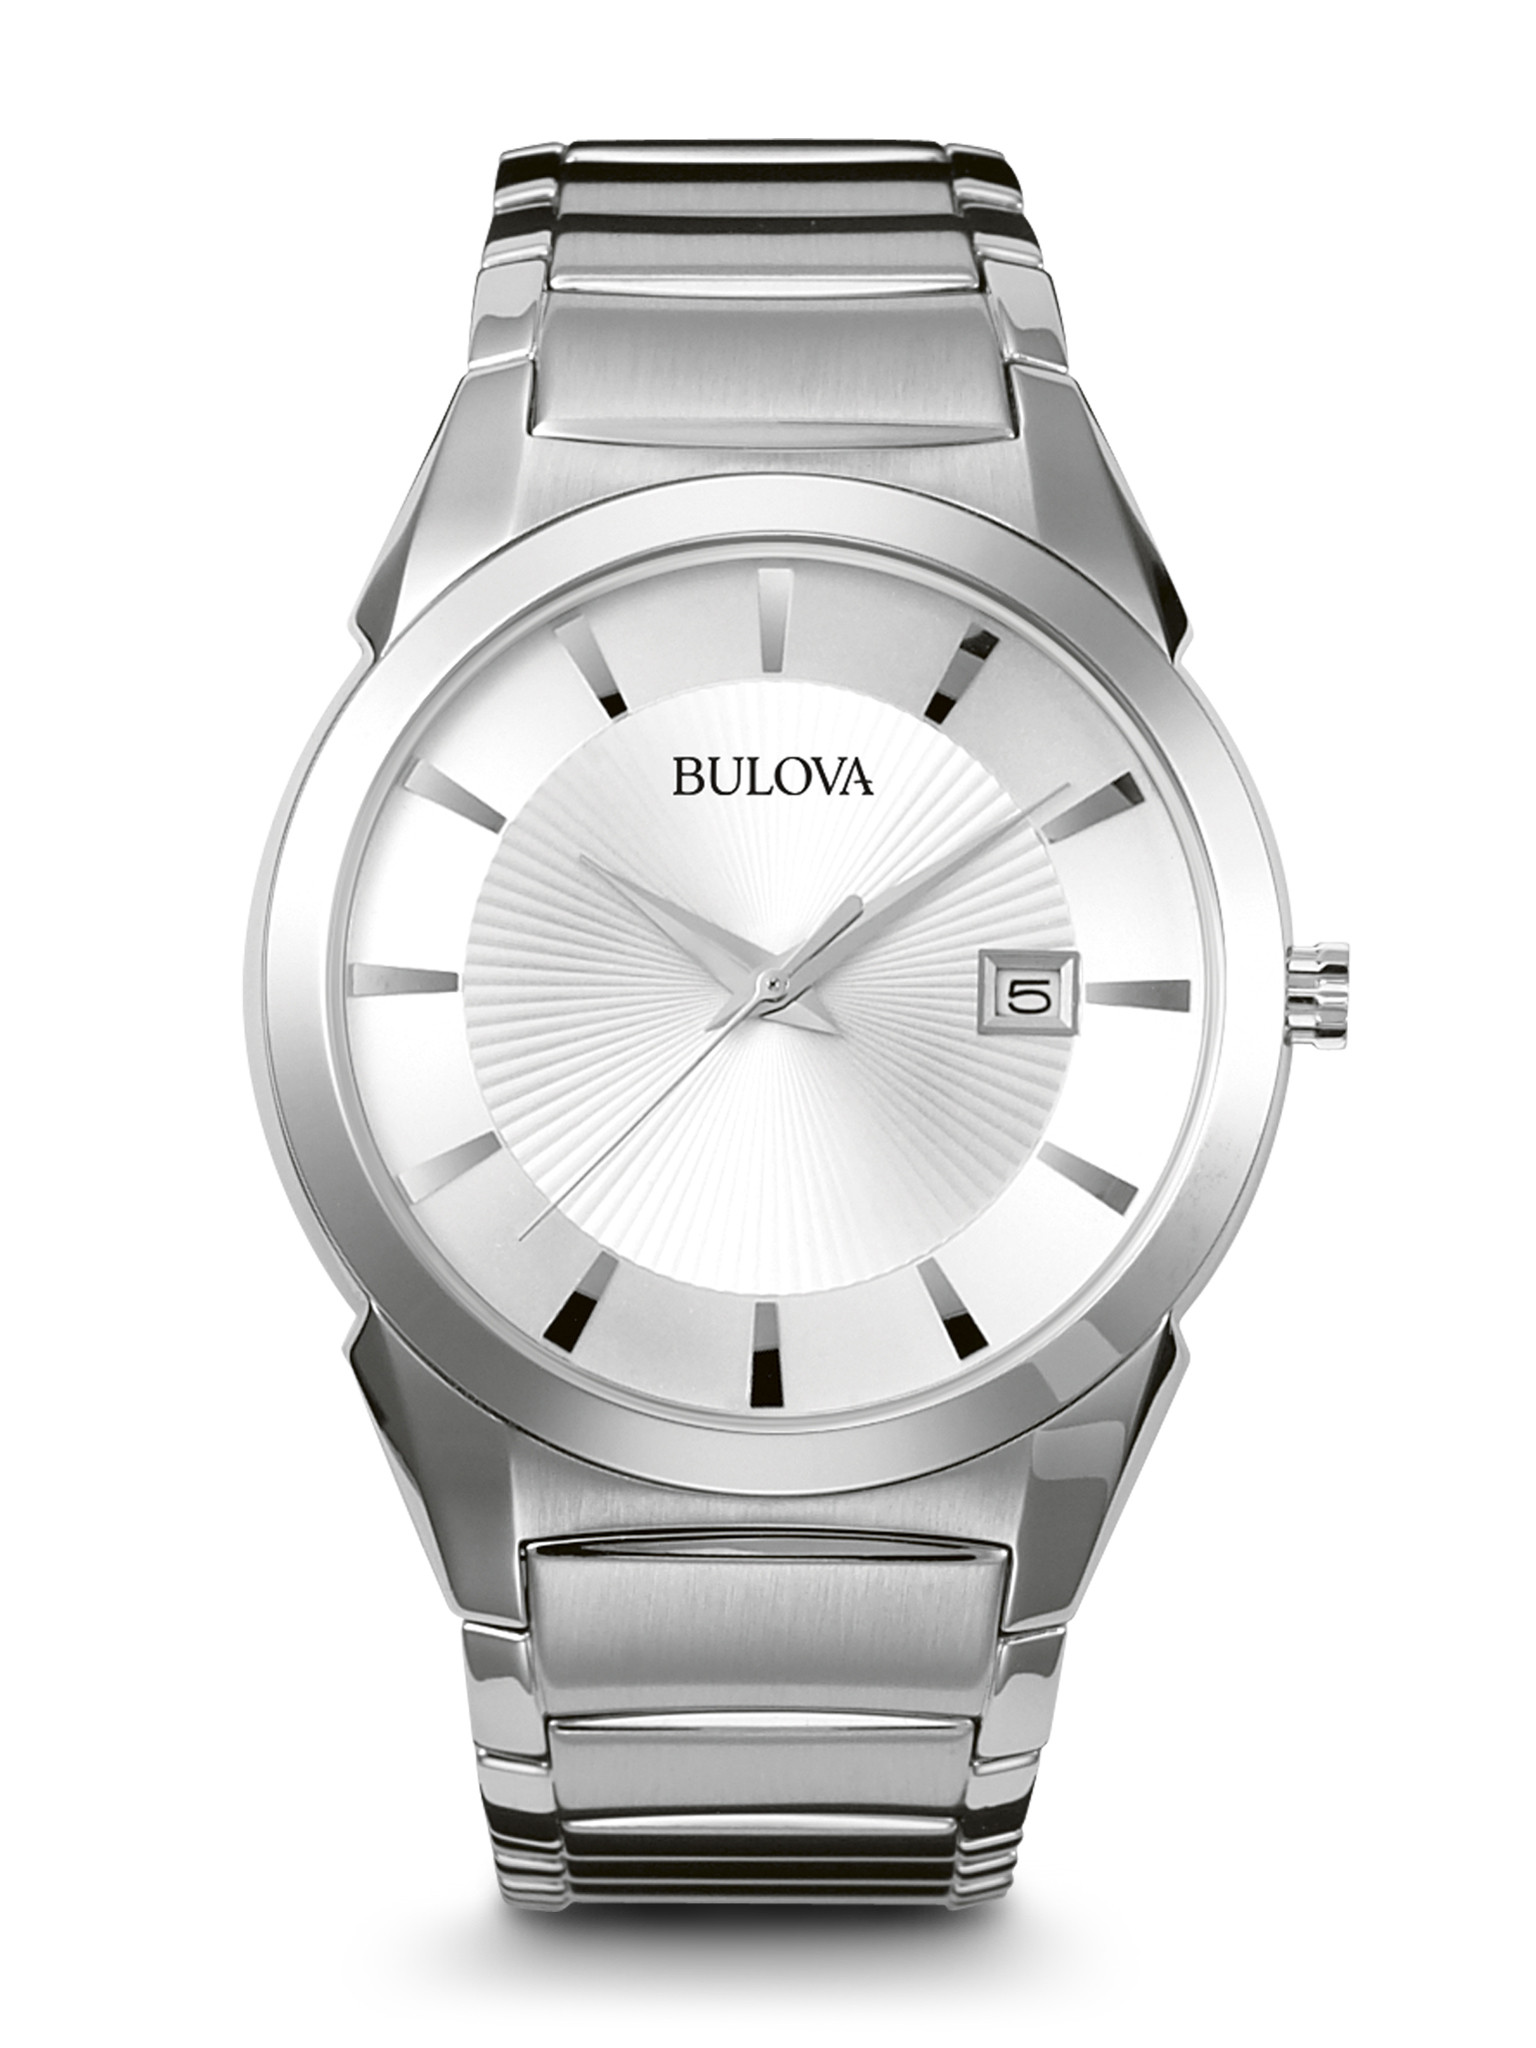 Bulova 96b015 Men S Watch Long Island Ny Men S Bulova